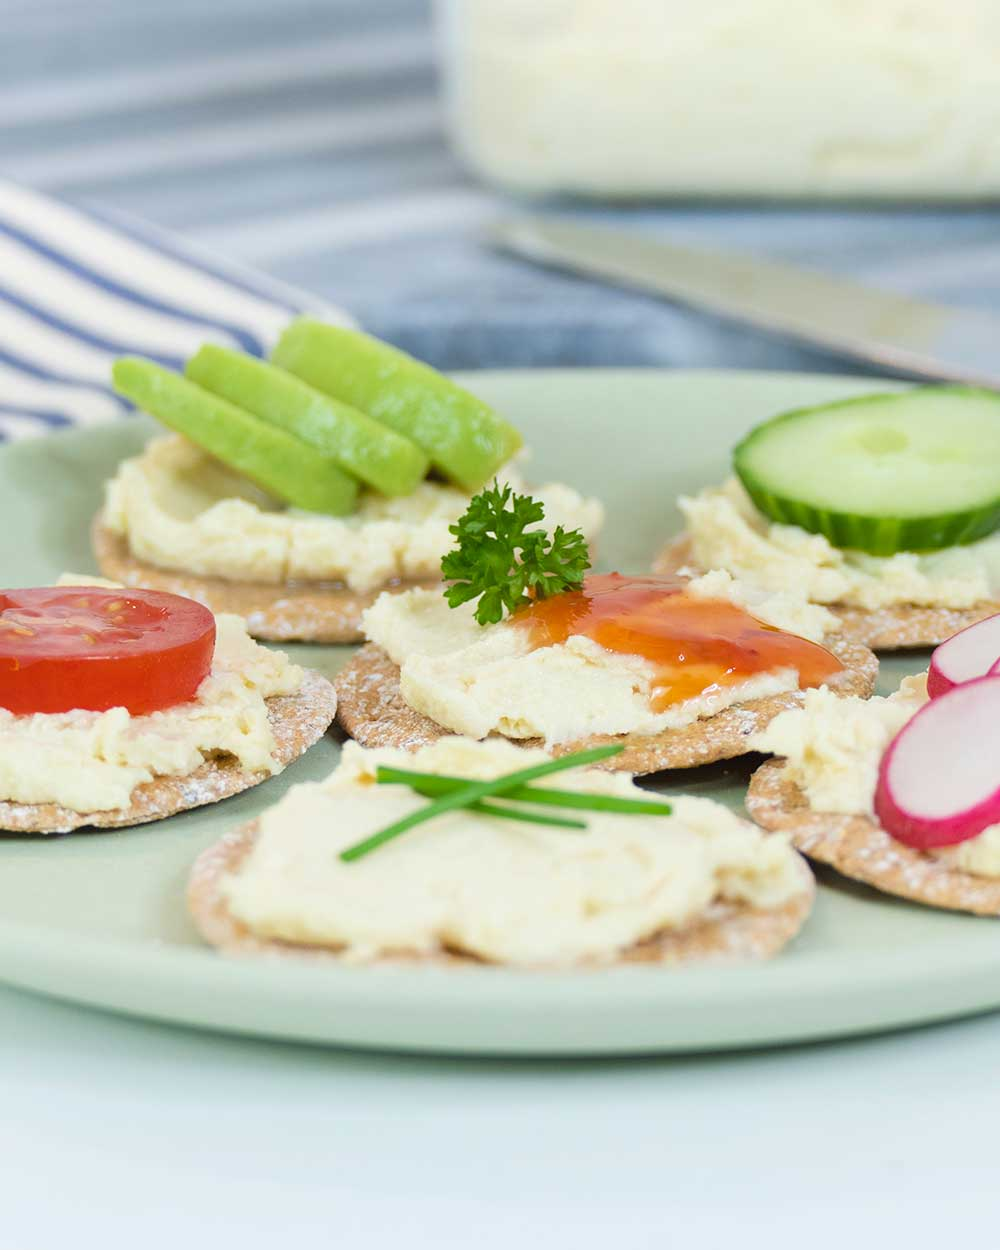 vegan cream cheese recipe on crackers